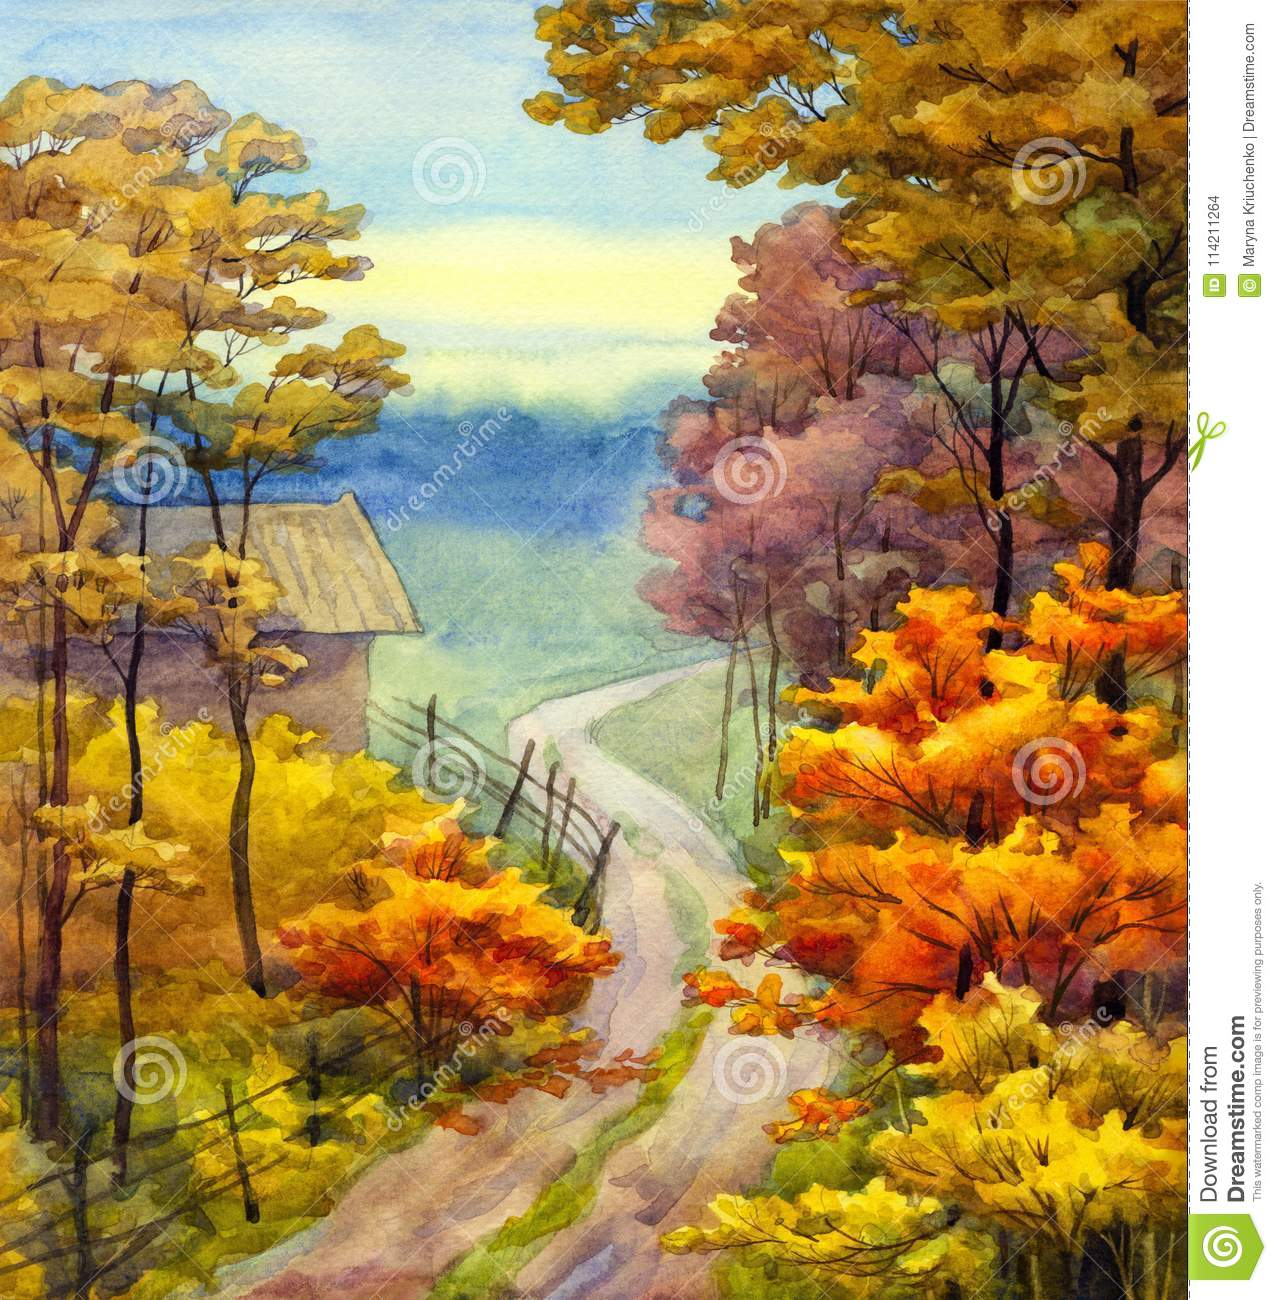 Colorful vibrant hand drawn watercolour sketch drawing on paper backdrop with space for text on glowing heaven quiet romantic scene